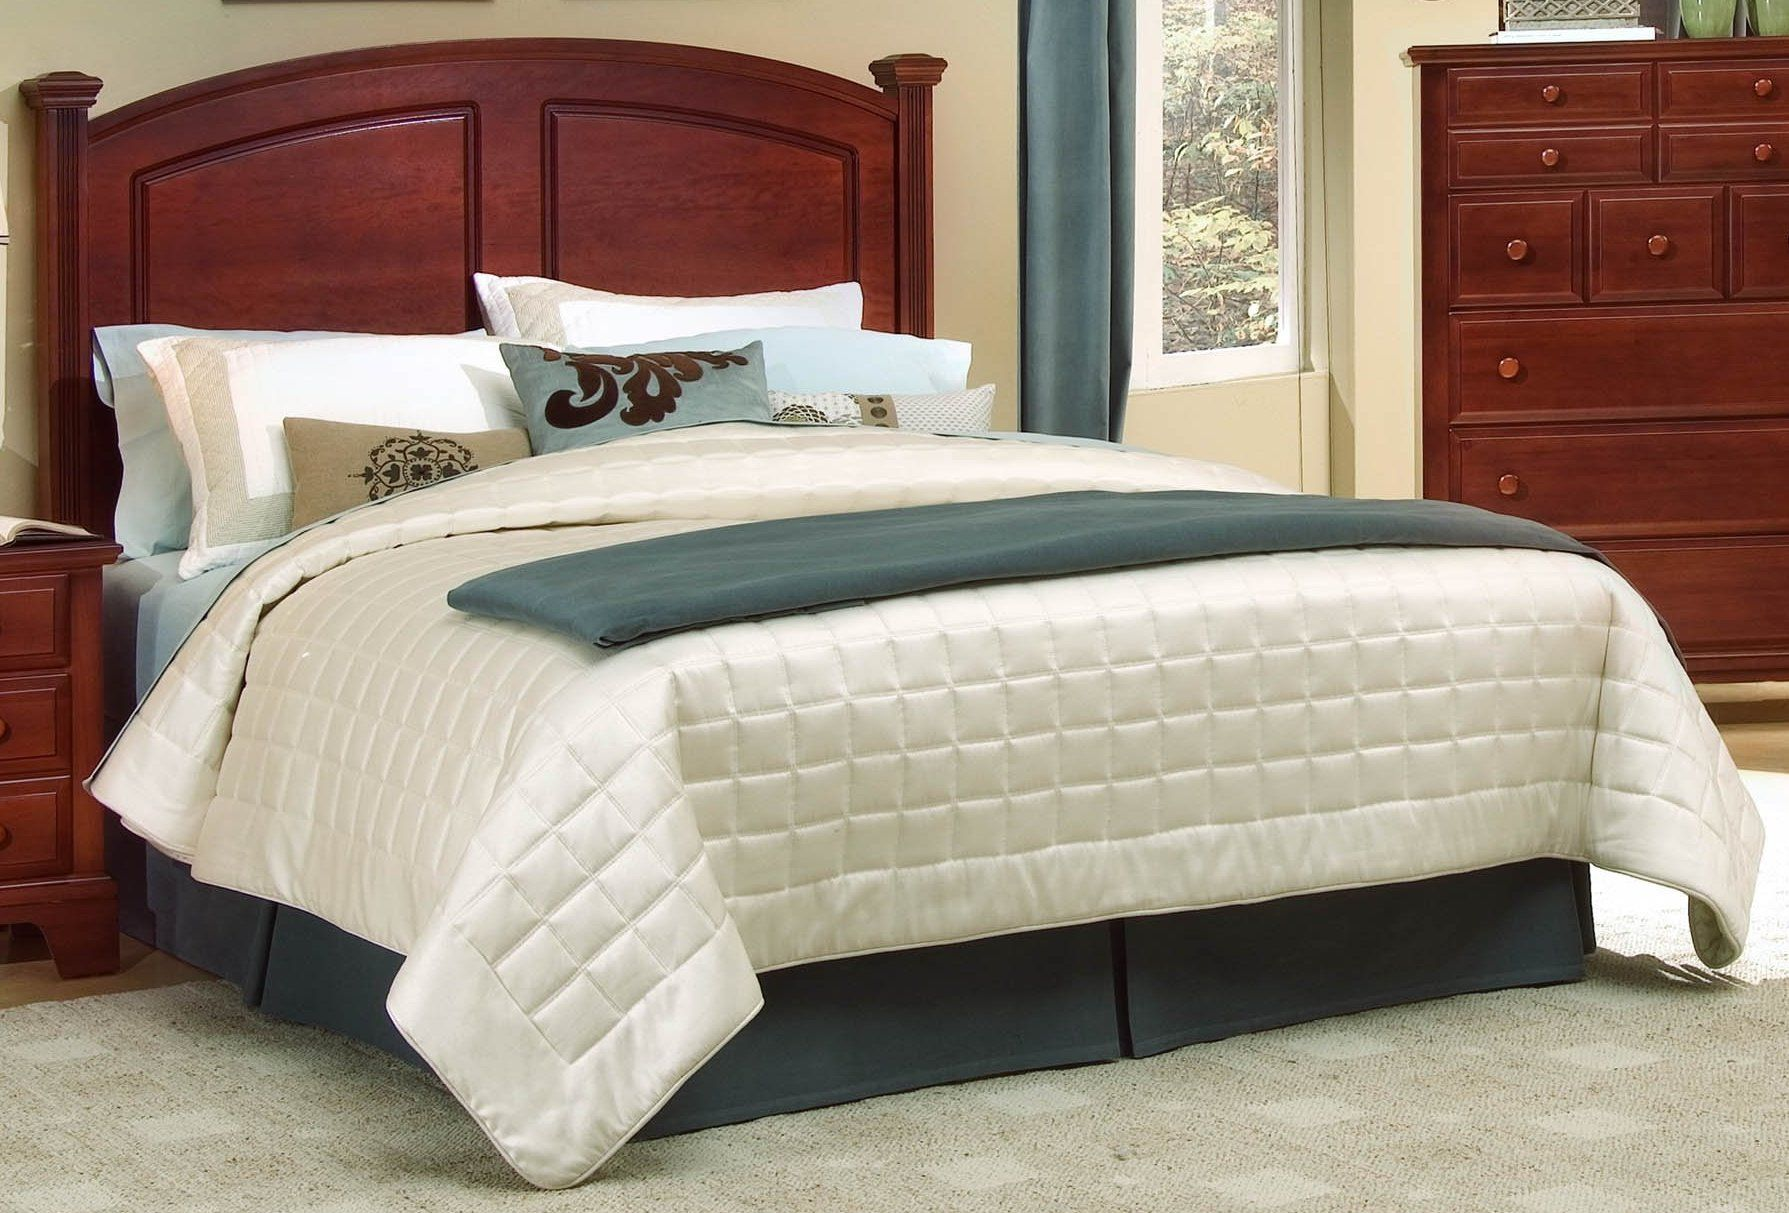 1000+ images about Home Ideas on Pinterest | Bedroom Furniture ...